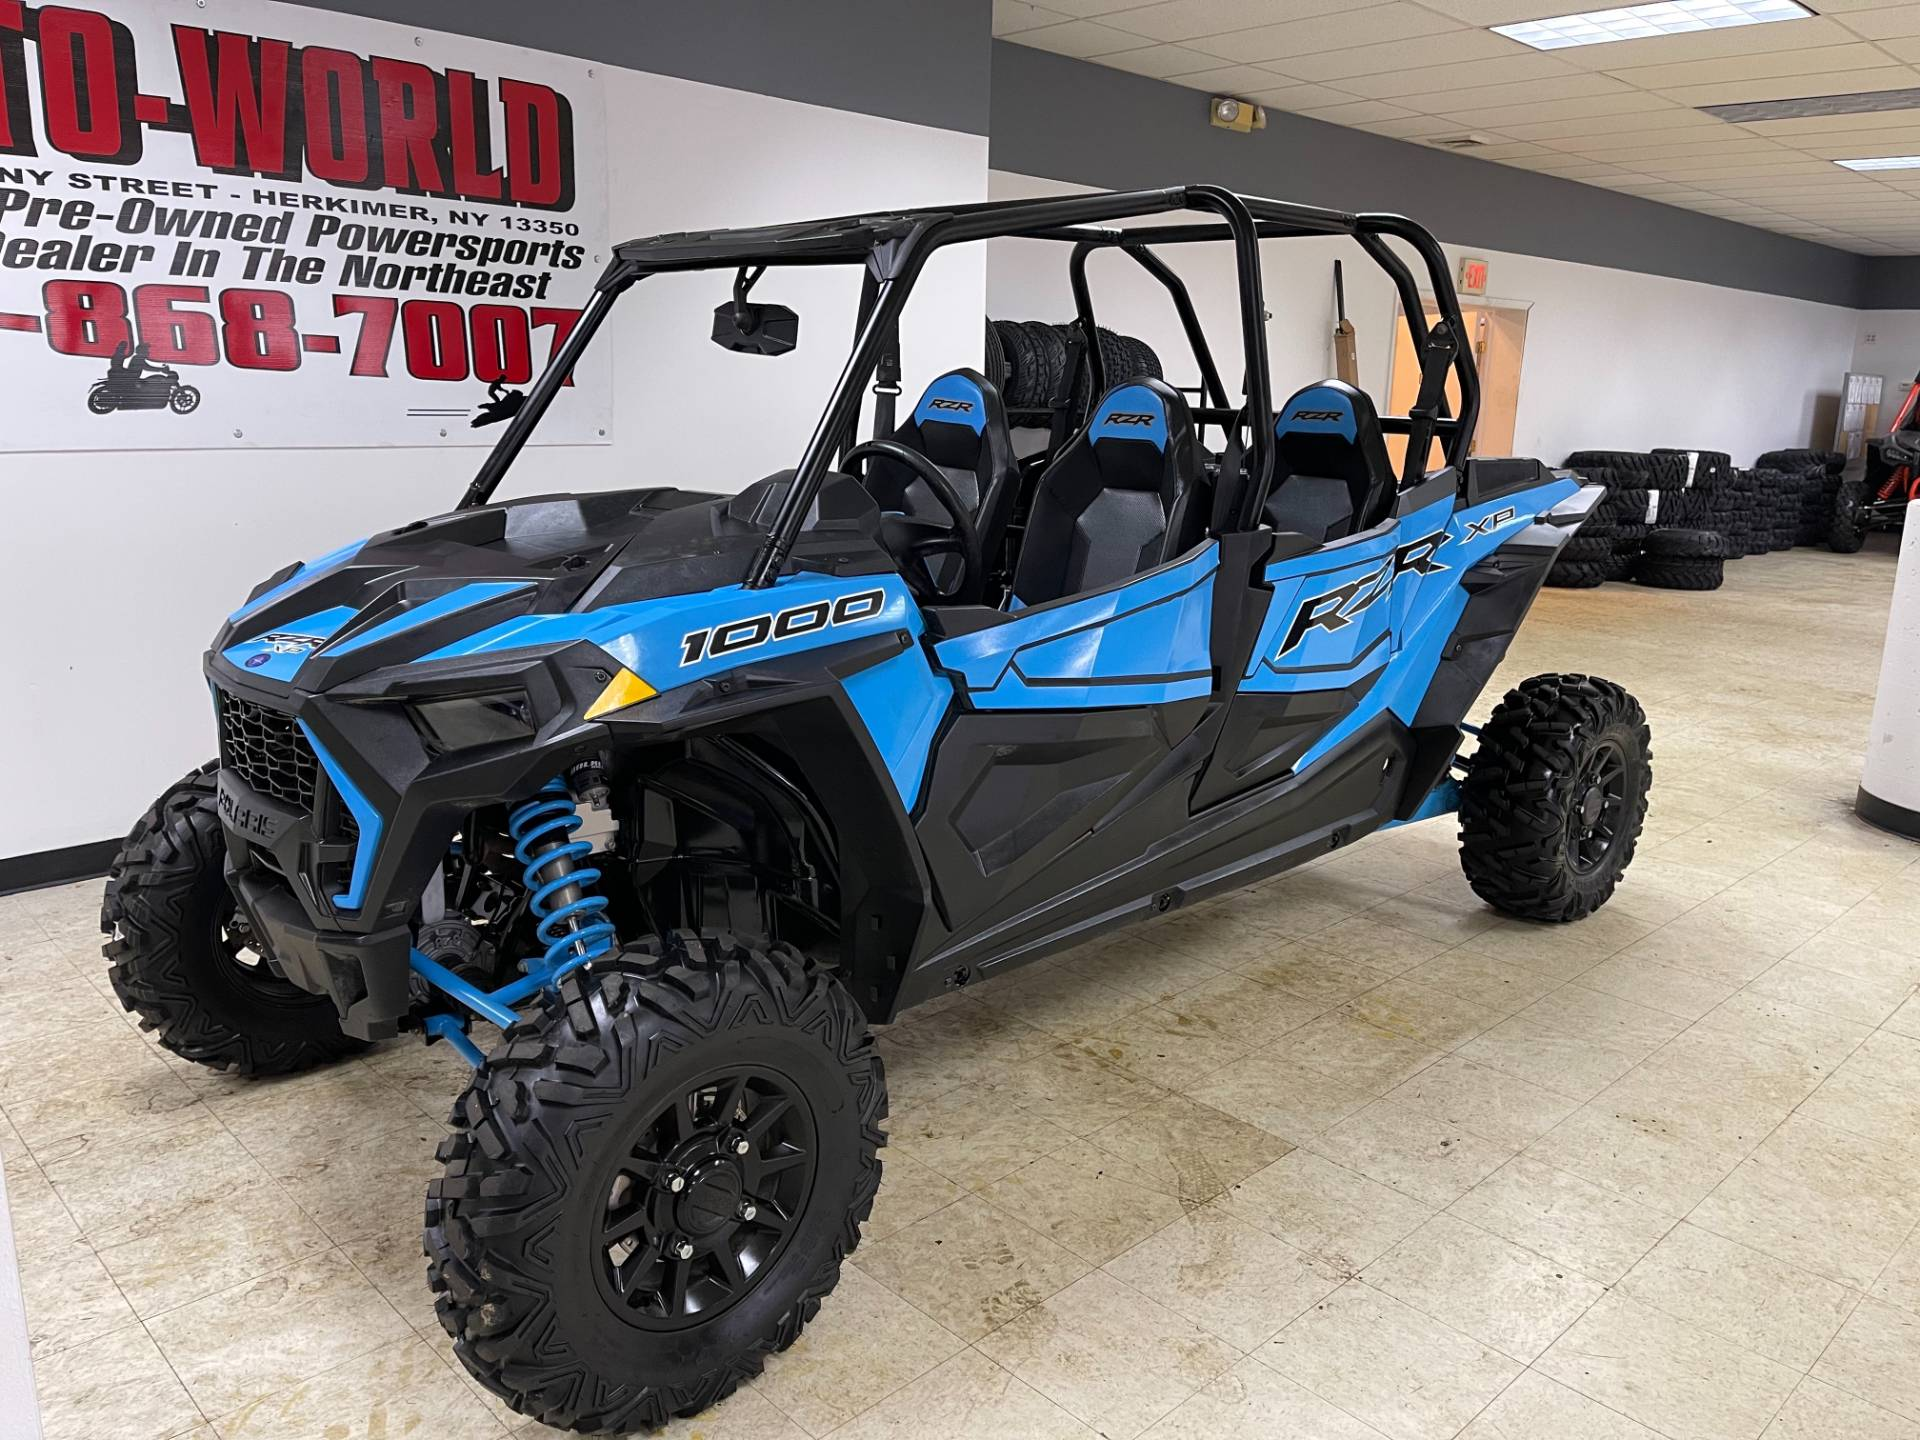 2020 Polaris RZR XP 4 1000 in Herkimer, New York - Photo 5